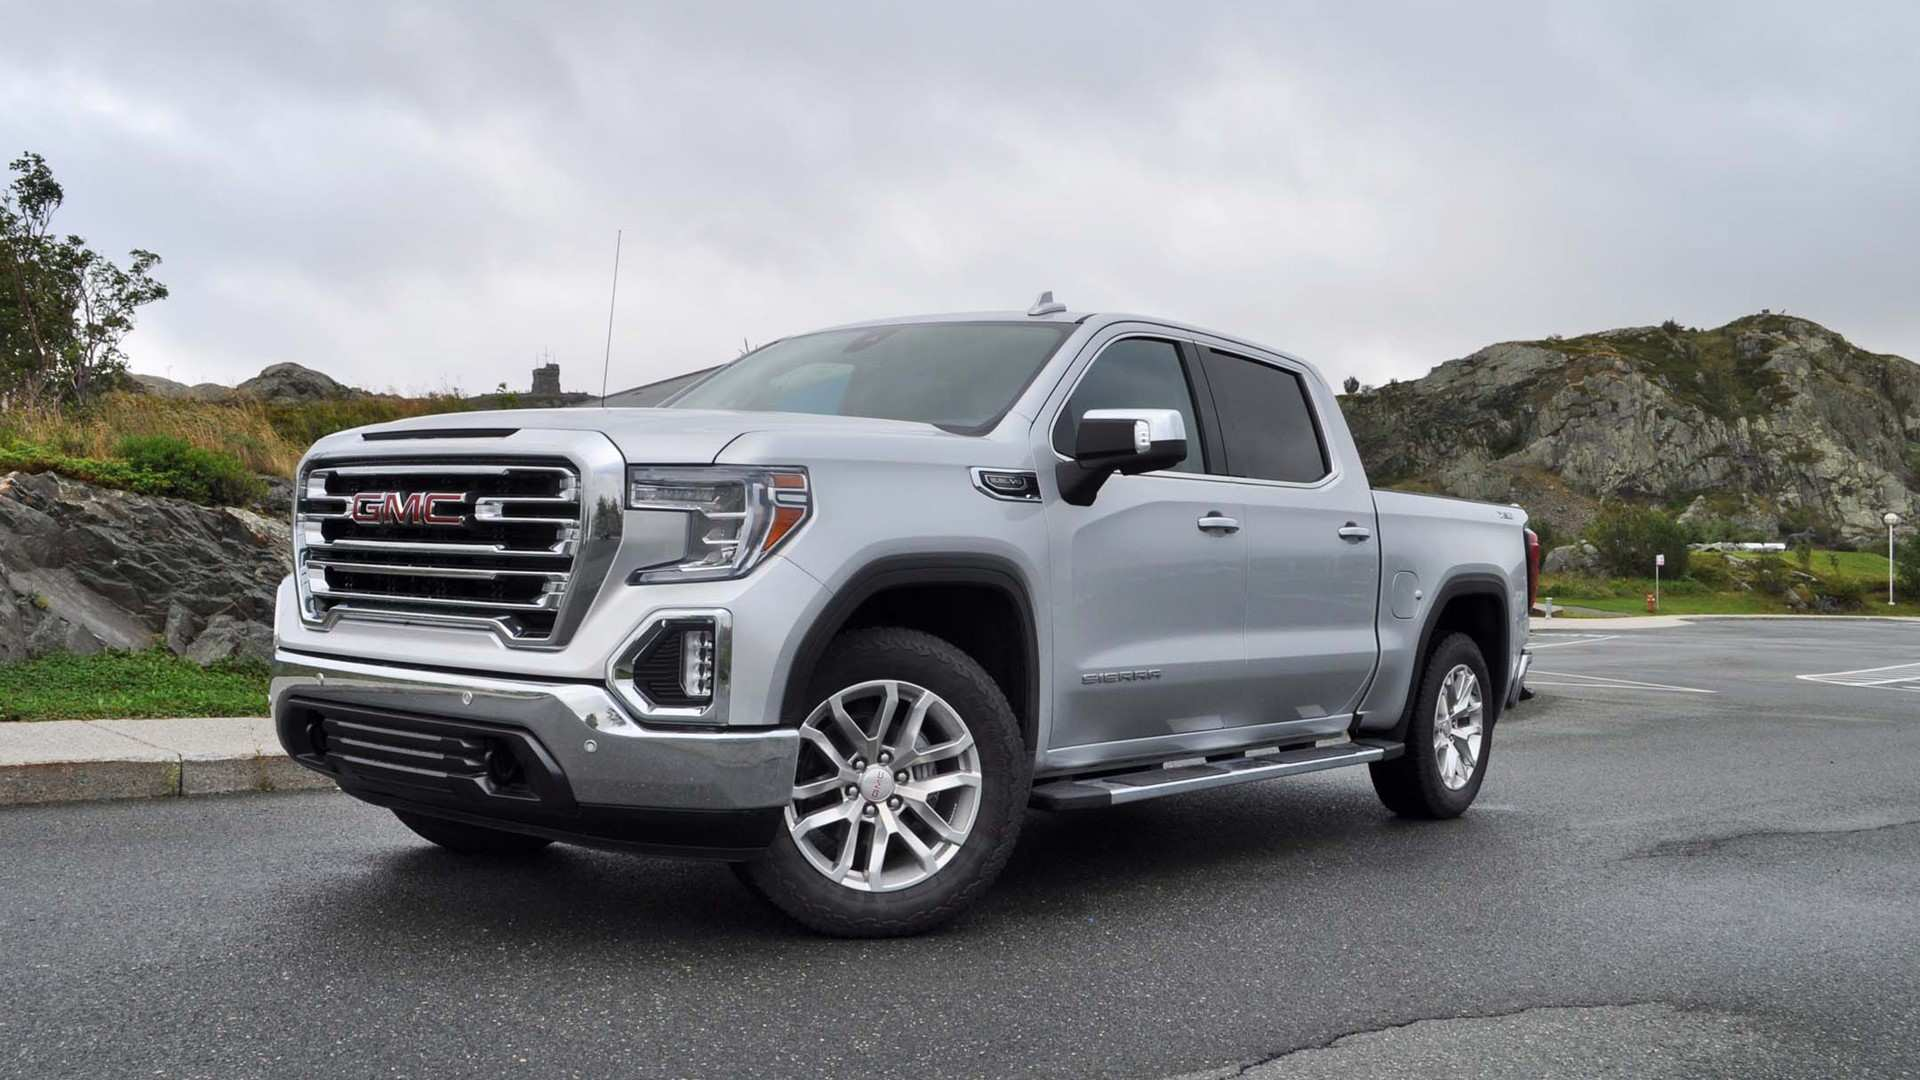 98 The New Gmc Sierra 2019 New Review History by New Gmc Sierra 2019 New Review